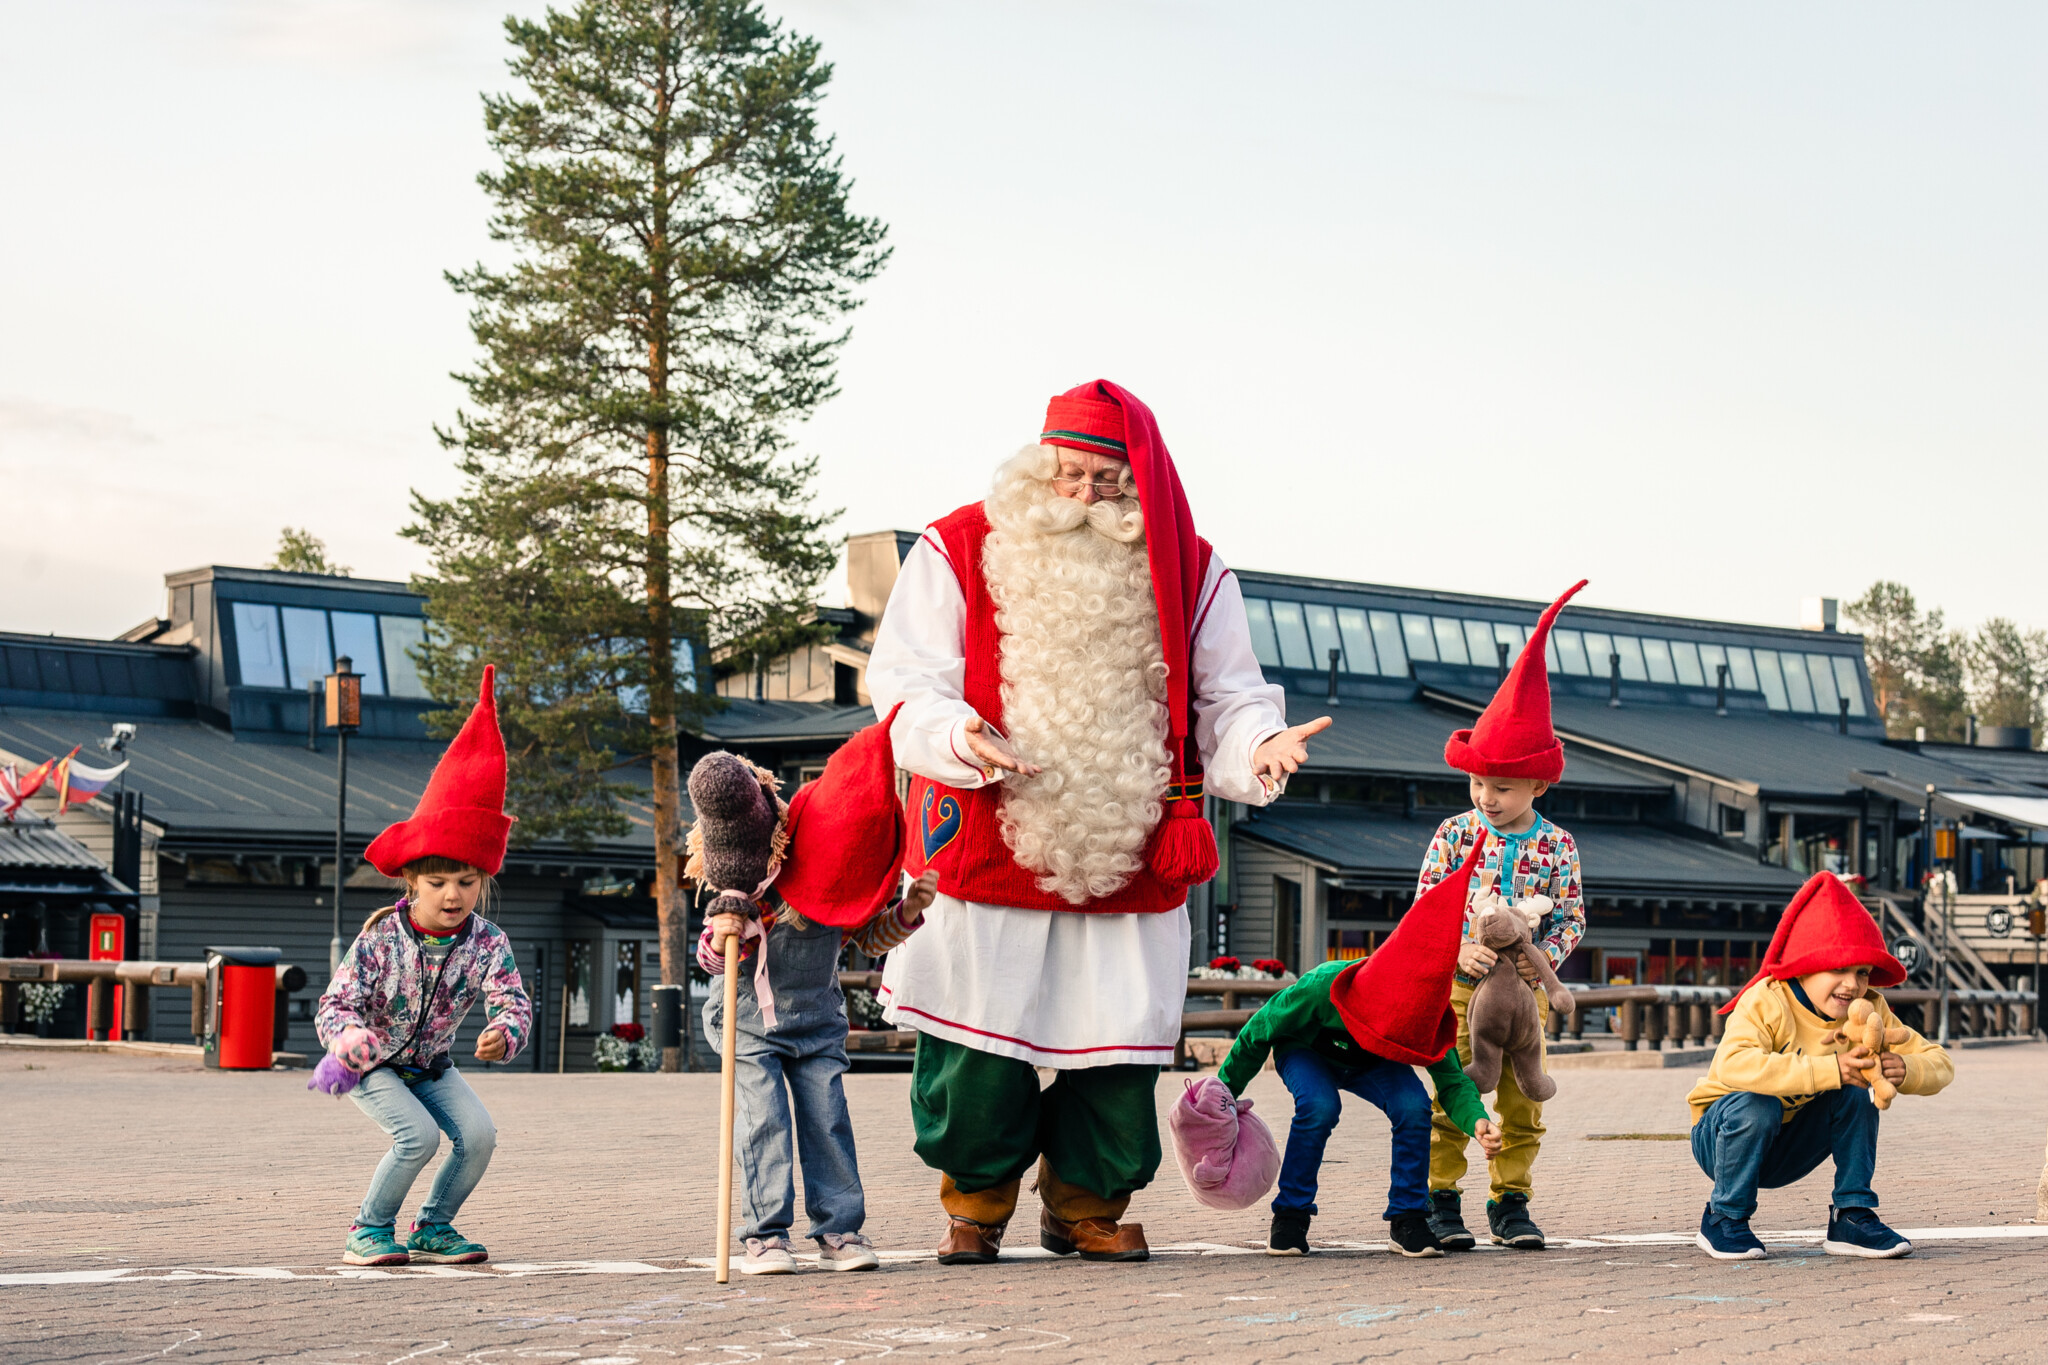 Santa Claus playing with kids on the Arctic Circle at Santa Claus Village in Rovaniemi Lapland Finland.